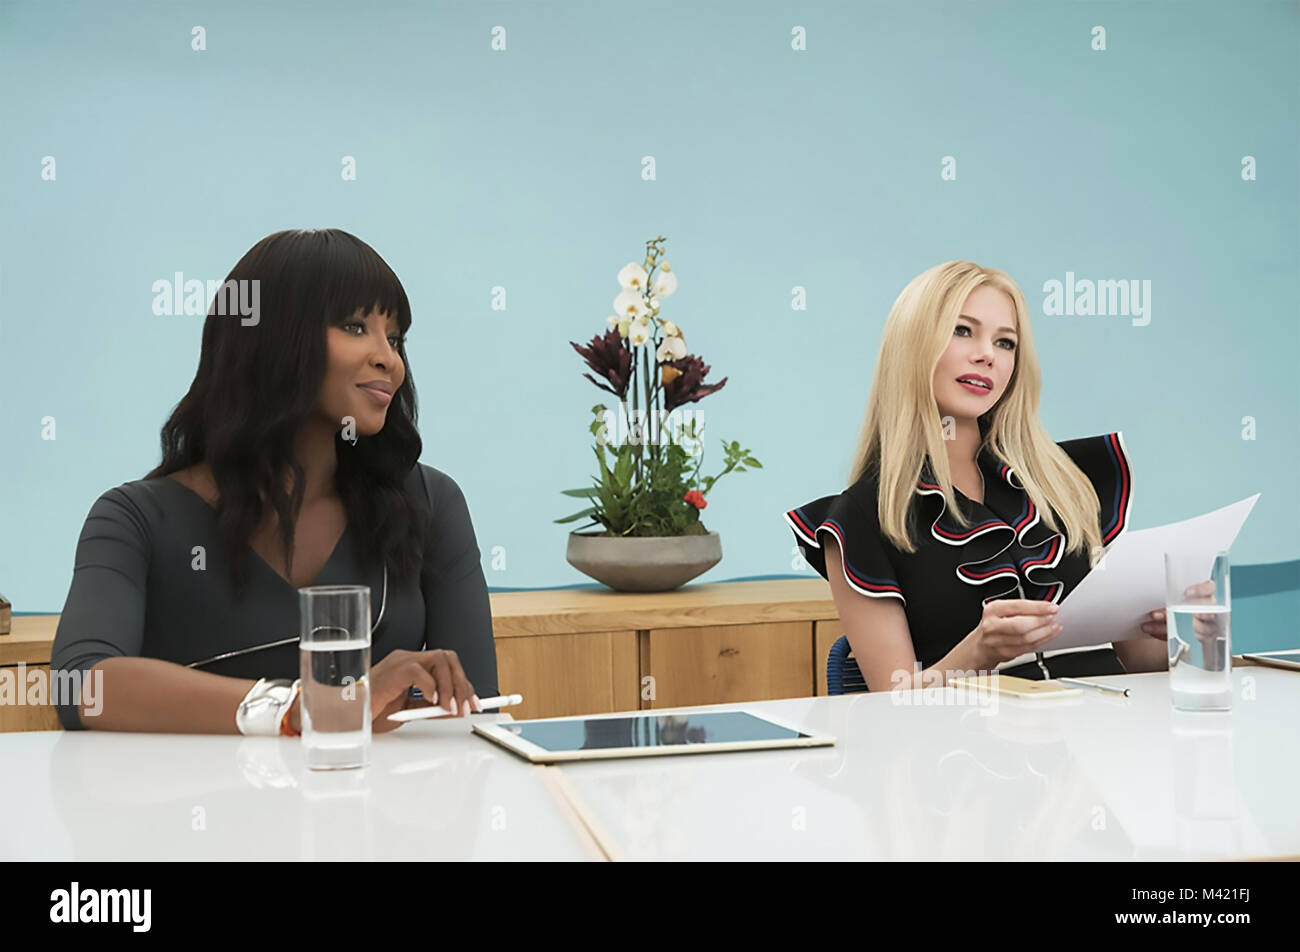 I FEEL PRETTY 2018 Voltage Pictures film with Naomi Campbell at left and Michelle Williams - Stock Image